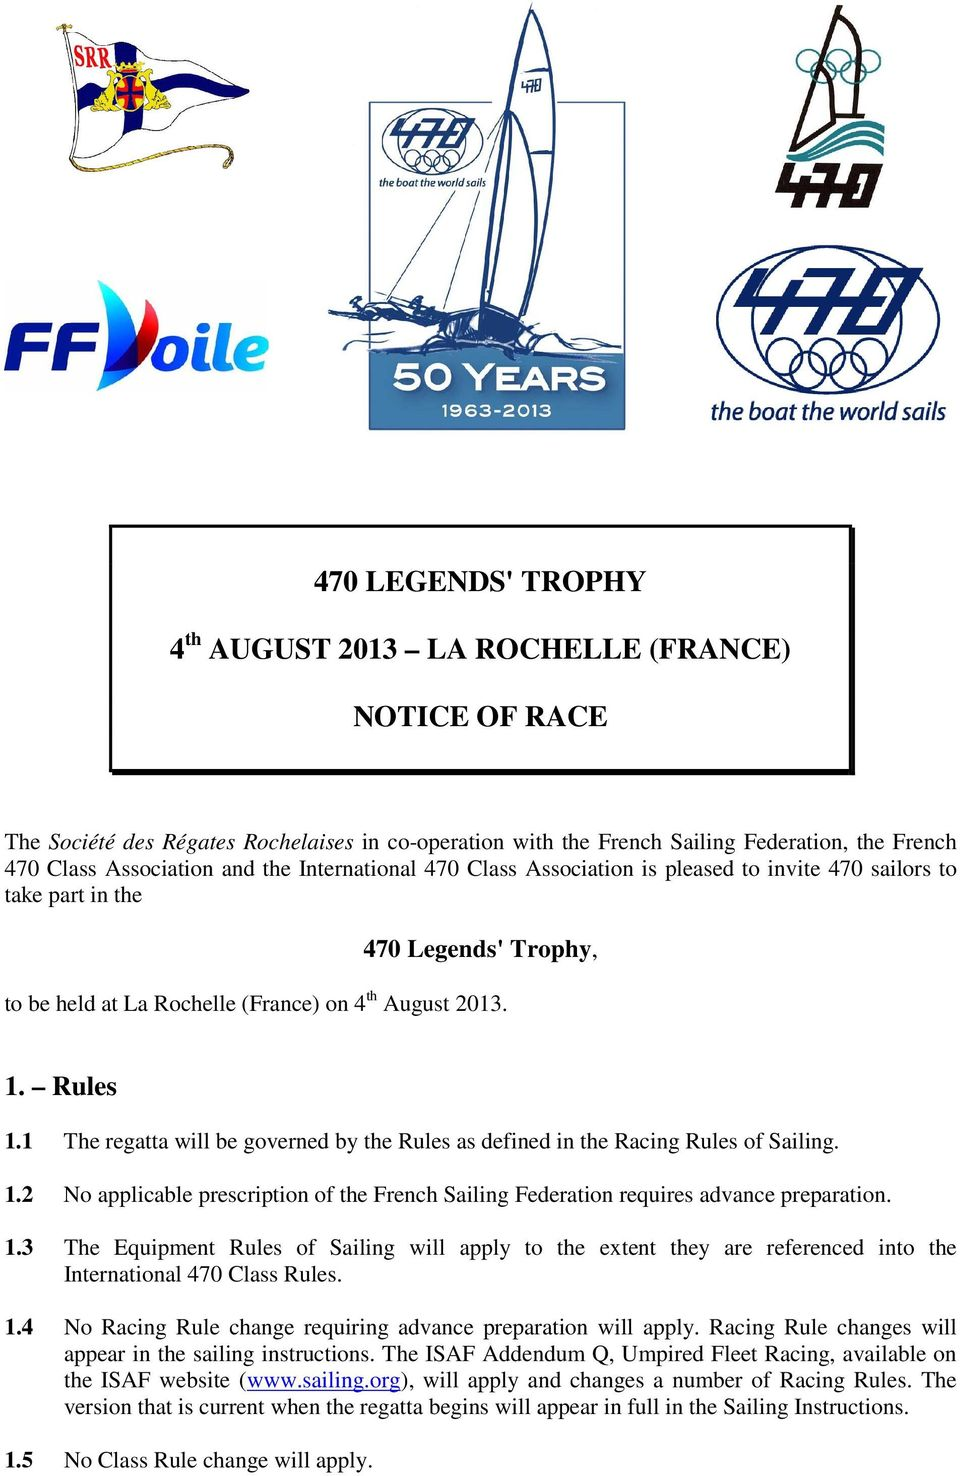 1 The regatta will be governed by the Rules as defined in the Racing Rules of Sailing. 1.